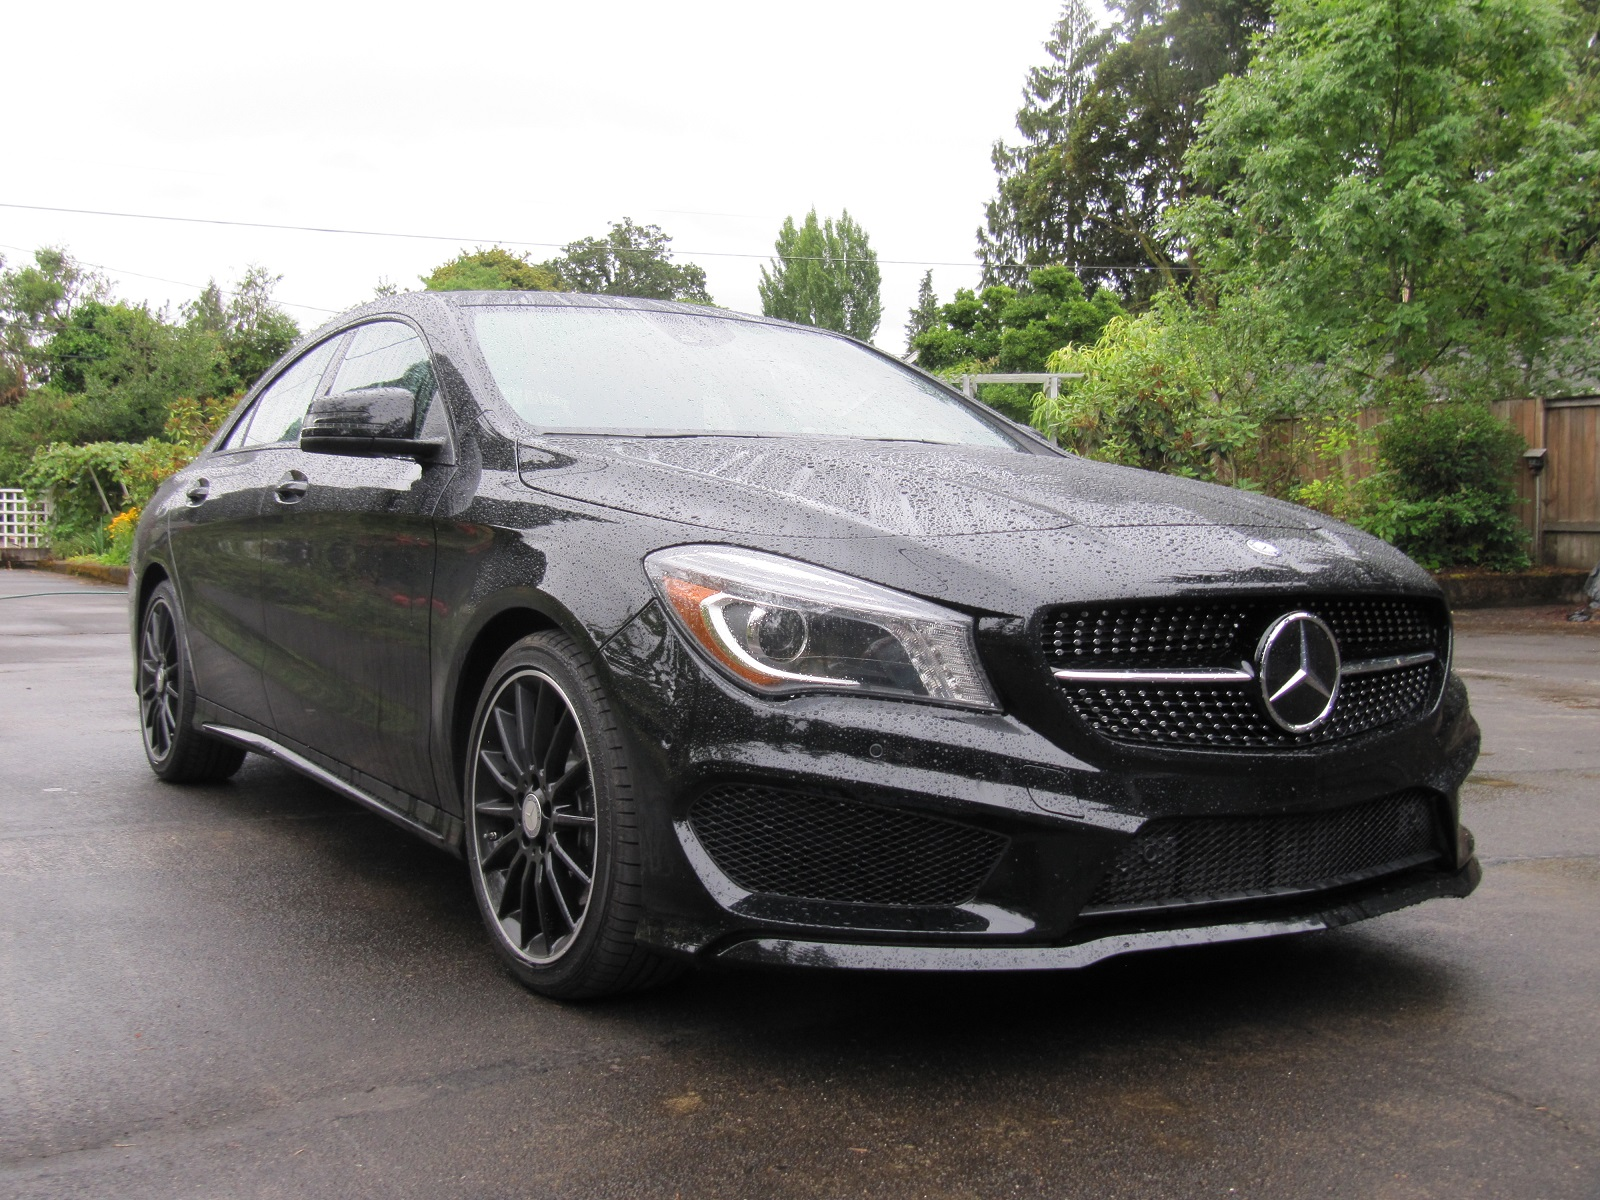 2014 Mercedes Benz CLA 250 Gas Mileage Review pact Luxury Sedan